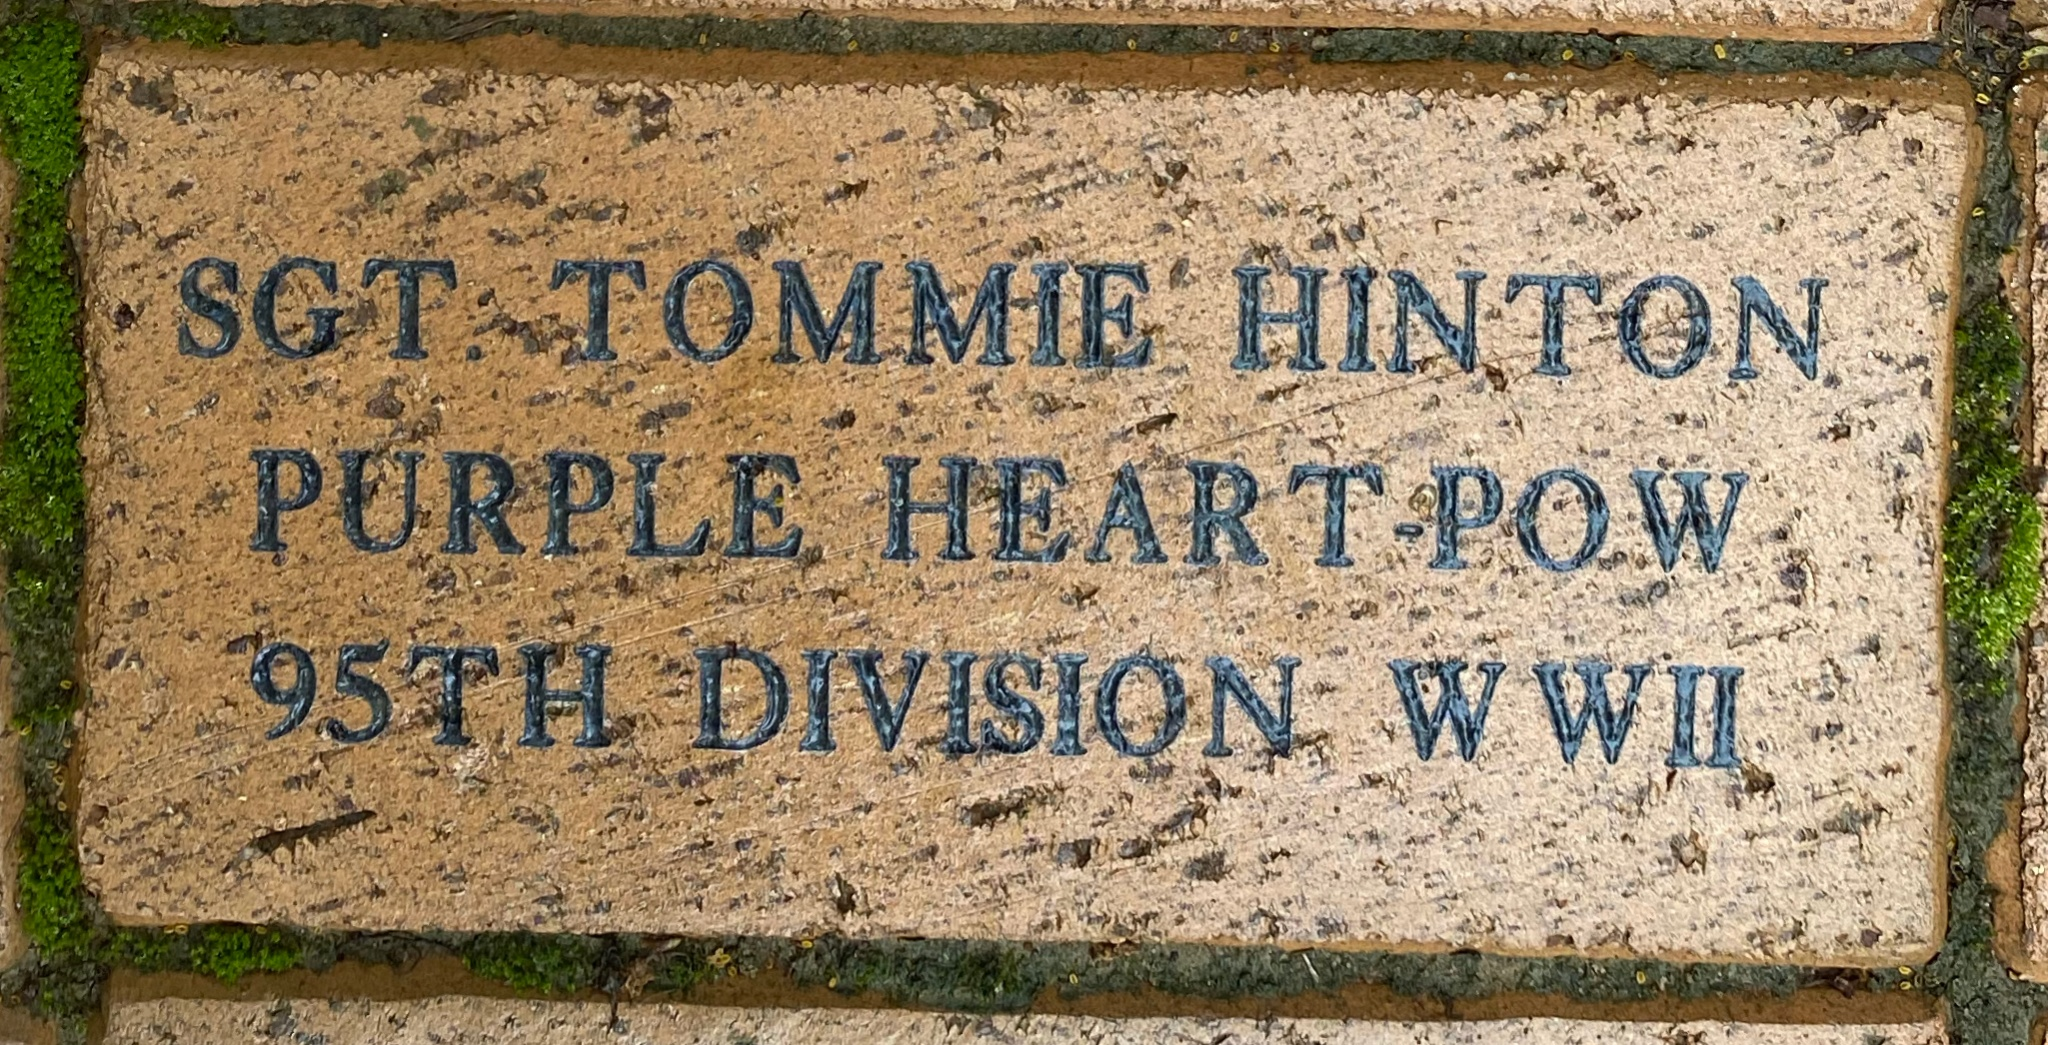 SGT TOMMIE HINTON PURPLE HEART POW 95TH DIVISION WWII